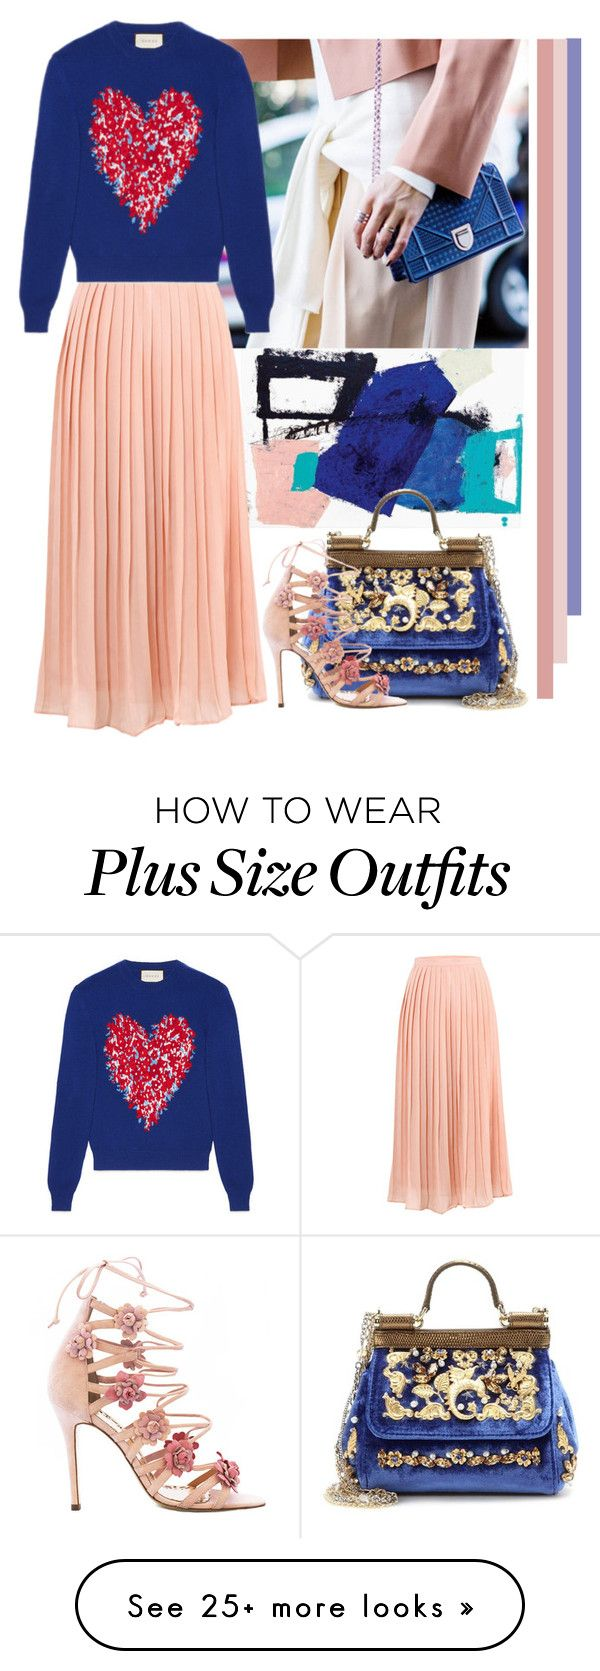 """Pretty Pleats"" by cherieaustin on Polyvore featuring iCanvas, Gucci, Dolce&Gabbana and Marchesa"